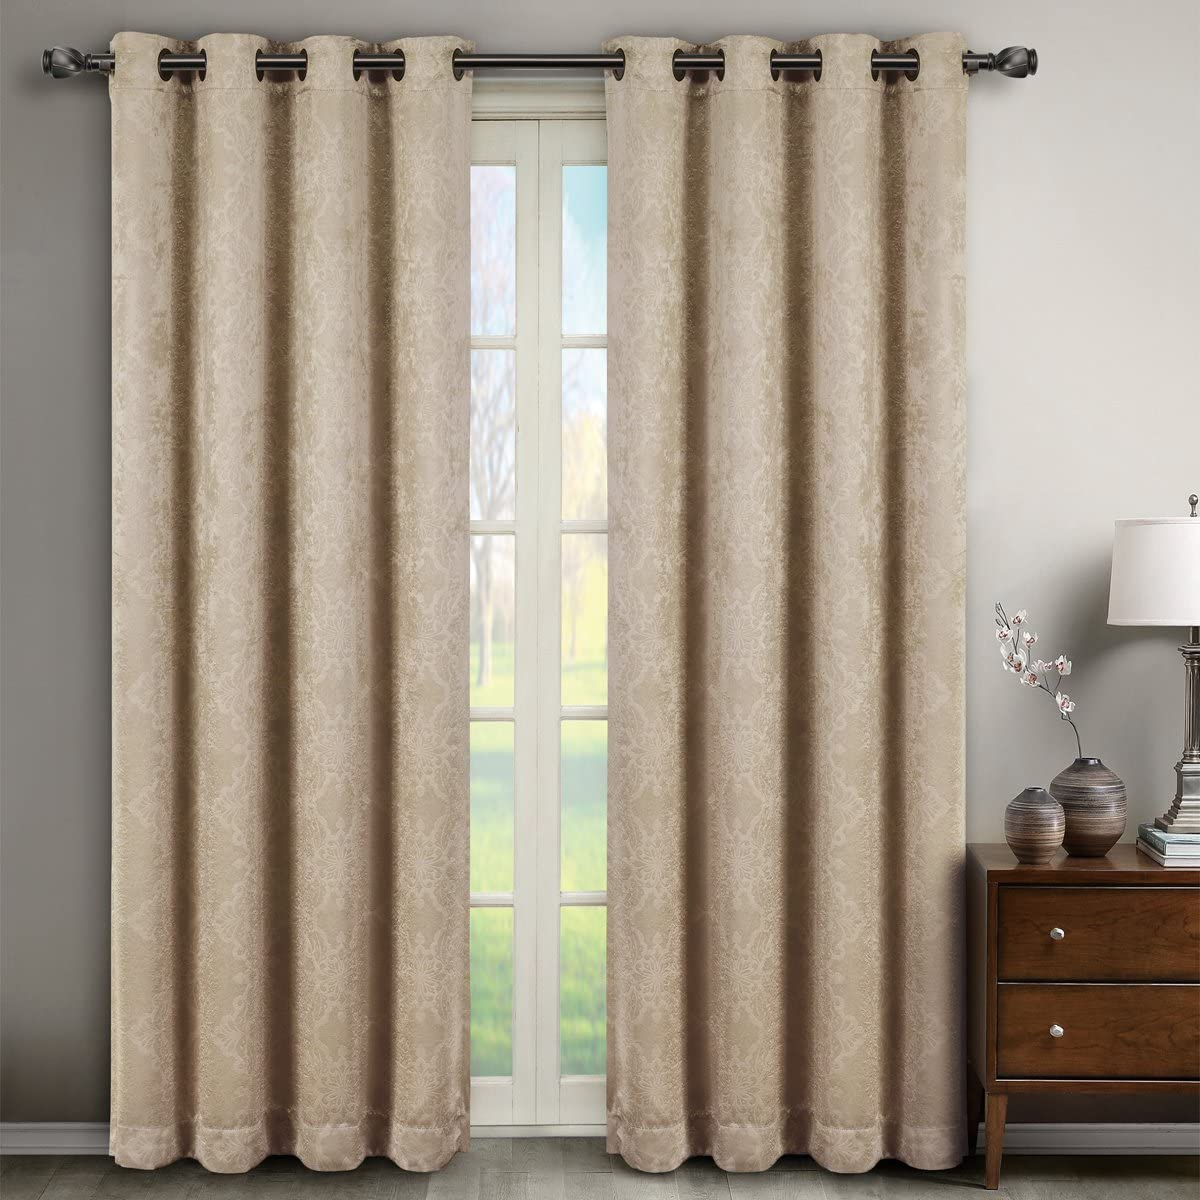 Deluxe Energy Efficient Room Darkening. Pair of Two Top Grommet Blackout Weave Embossed Curtain Panel, Elegant and Contemporary Bella Blackout Panel, Beige, 108 Panel